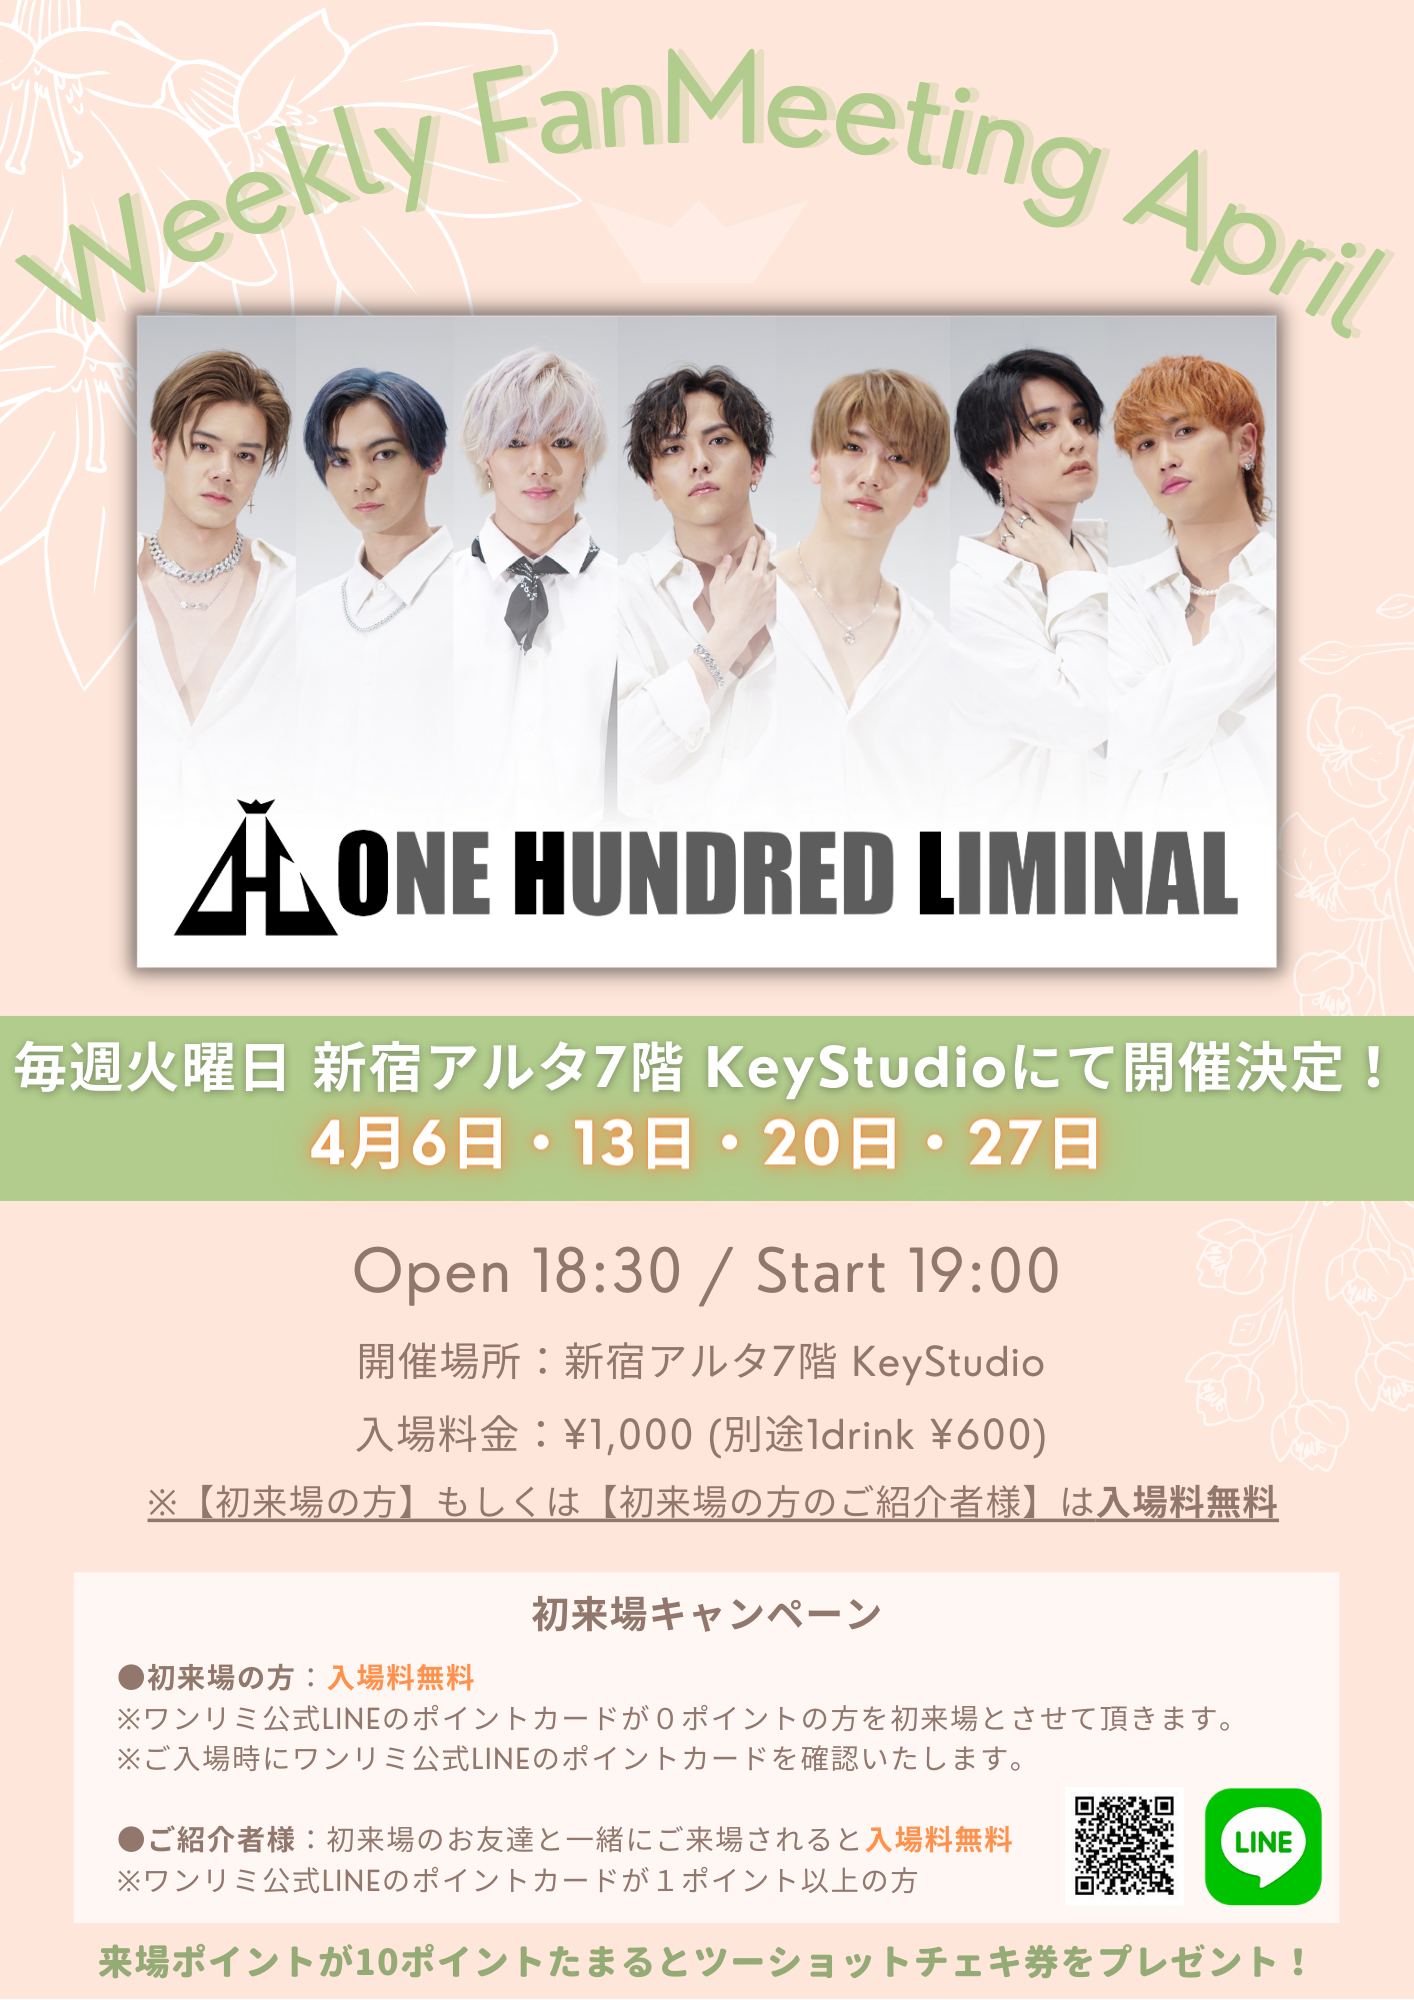 ONE HUNDRED LIMINAL -Weekly FanMeeting April-